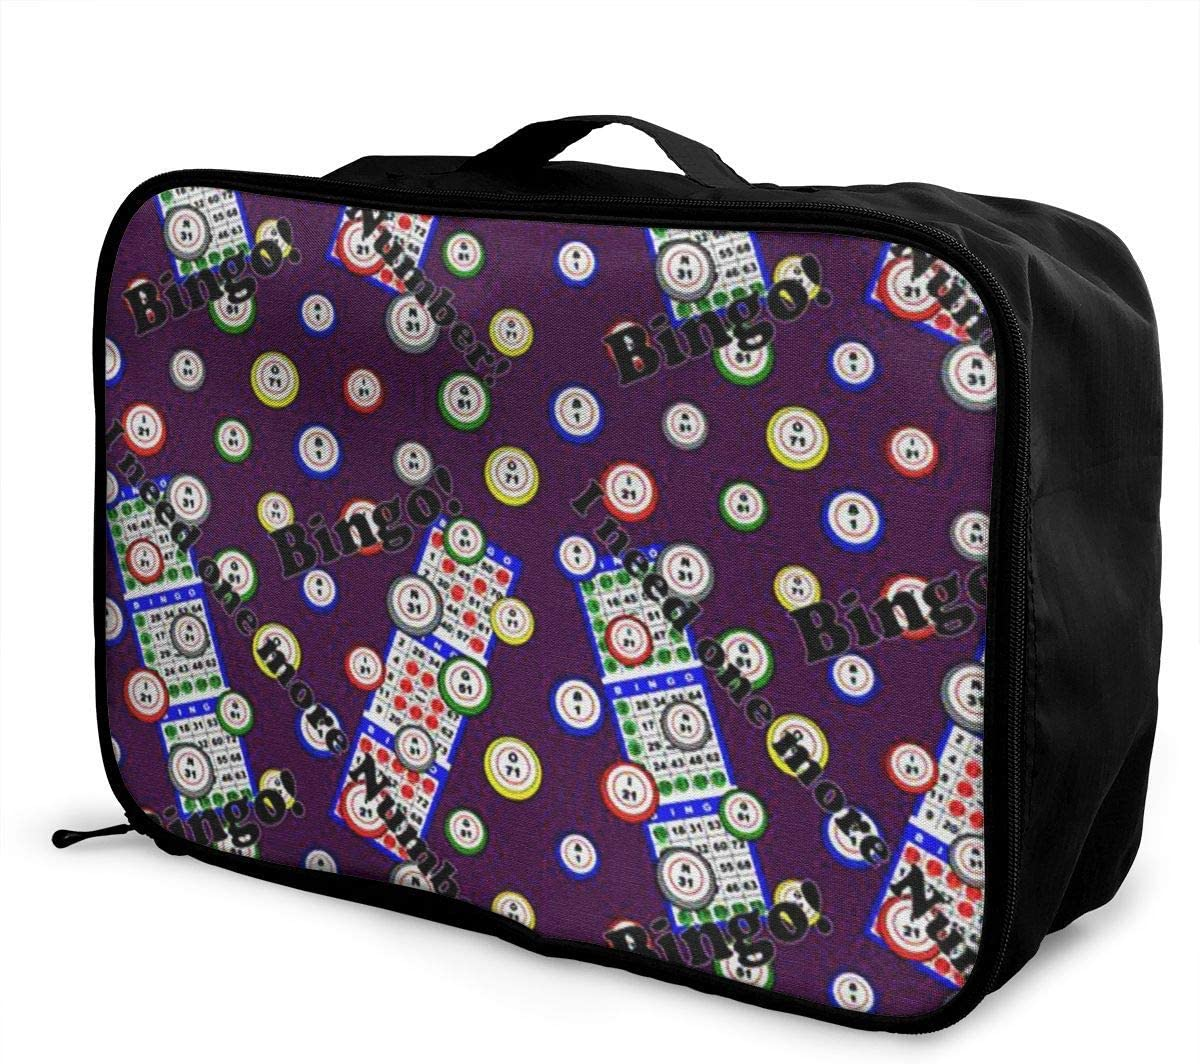 Portable Luggage Duffel Bag Bingo I Need One More Numbe Travel Bags Carry-on in Trolley Handle